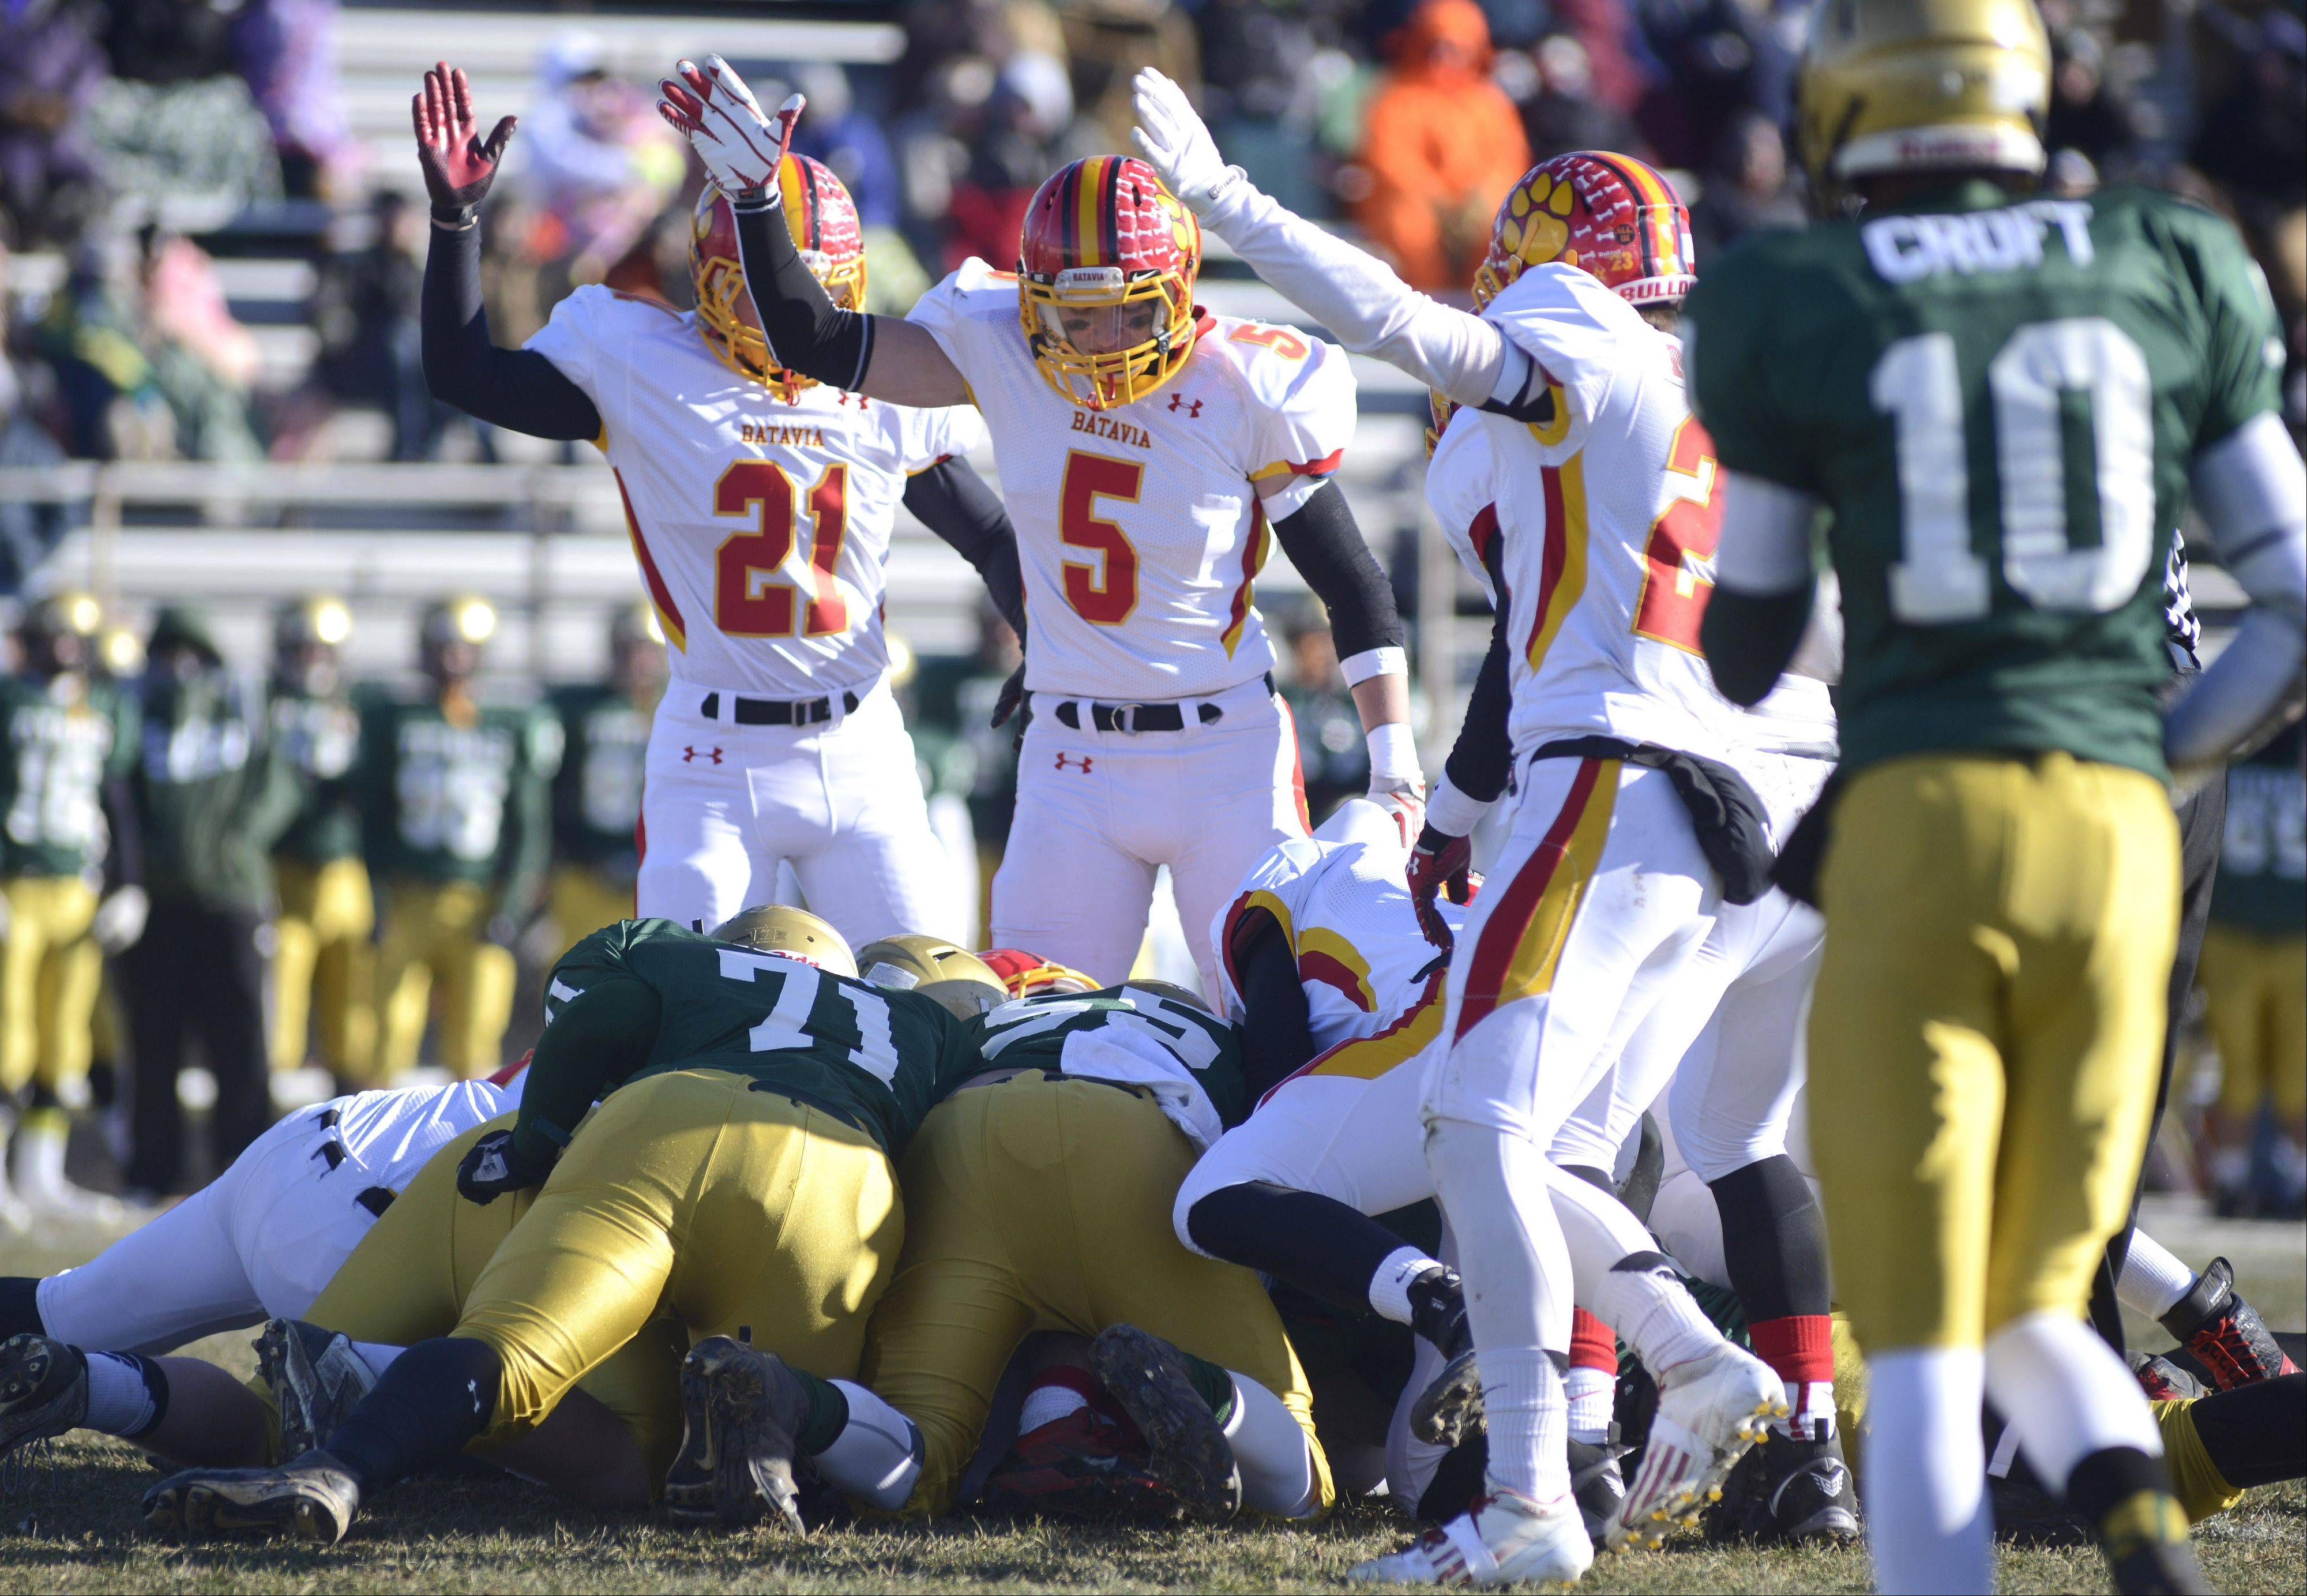 Batavia's Nick Bernabei (21), Jake Hlava (5) and Michael Moffatt point signaling the Bulldogs have recovered a Rockford Boylan fumble in the first quarter of the Class 6A semifinal game on Saturday, November 23.